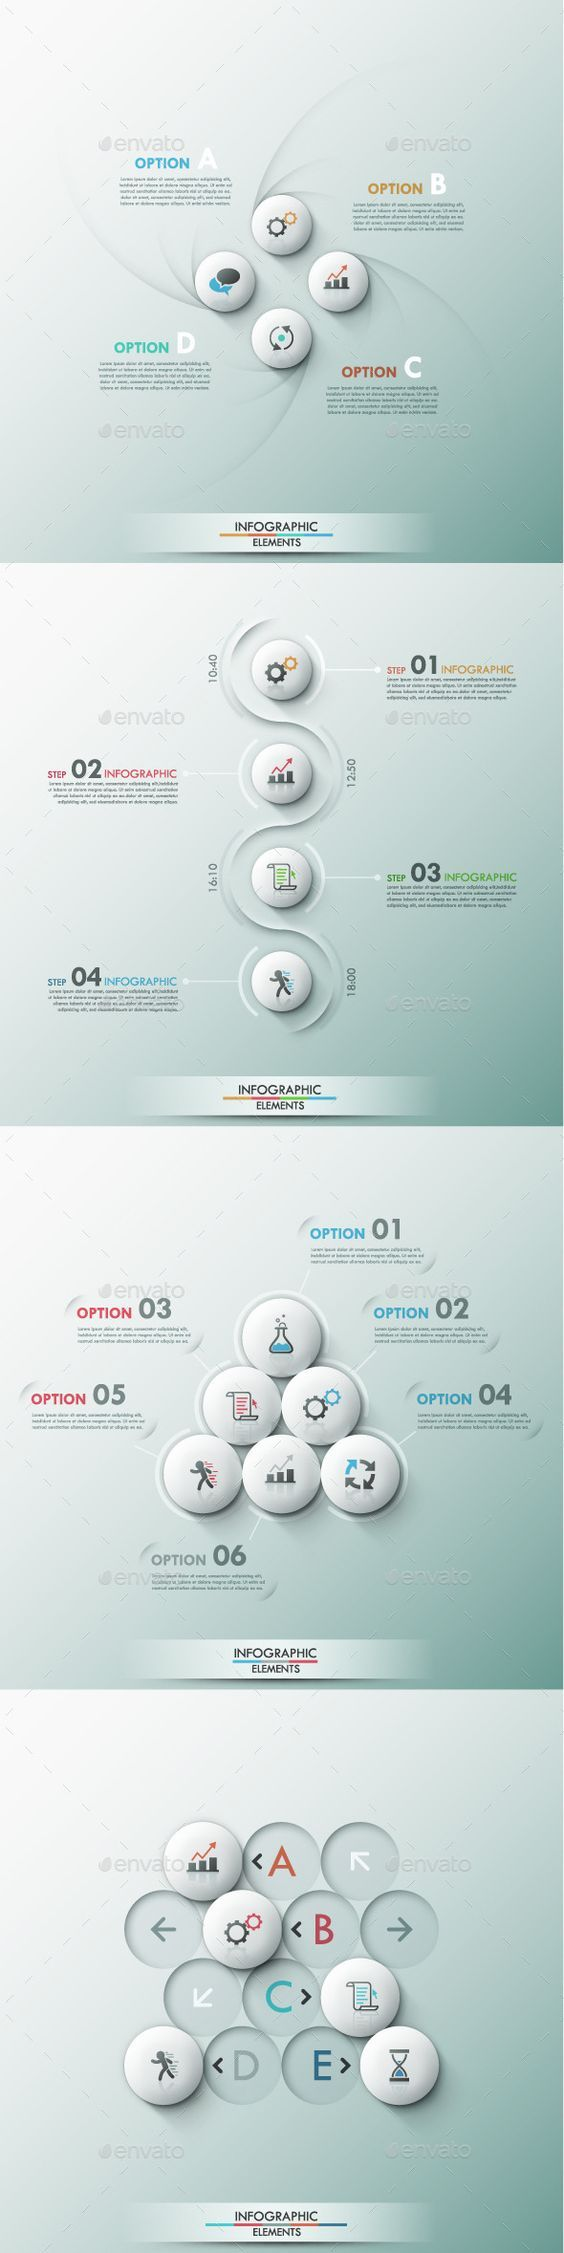 Set of 4 Modern Infographic Template #design Download: http://graphicriver.net/item/set-of-4-modern-infographic-templates/9449510?ref=ksioks: